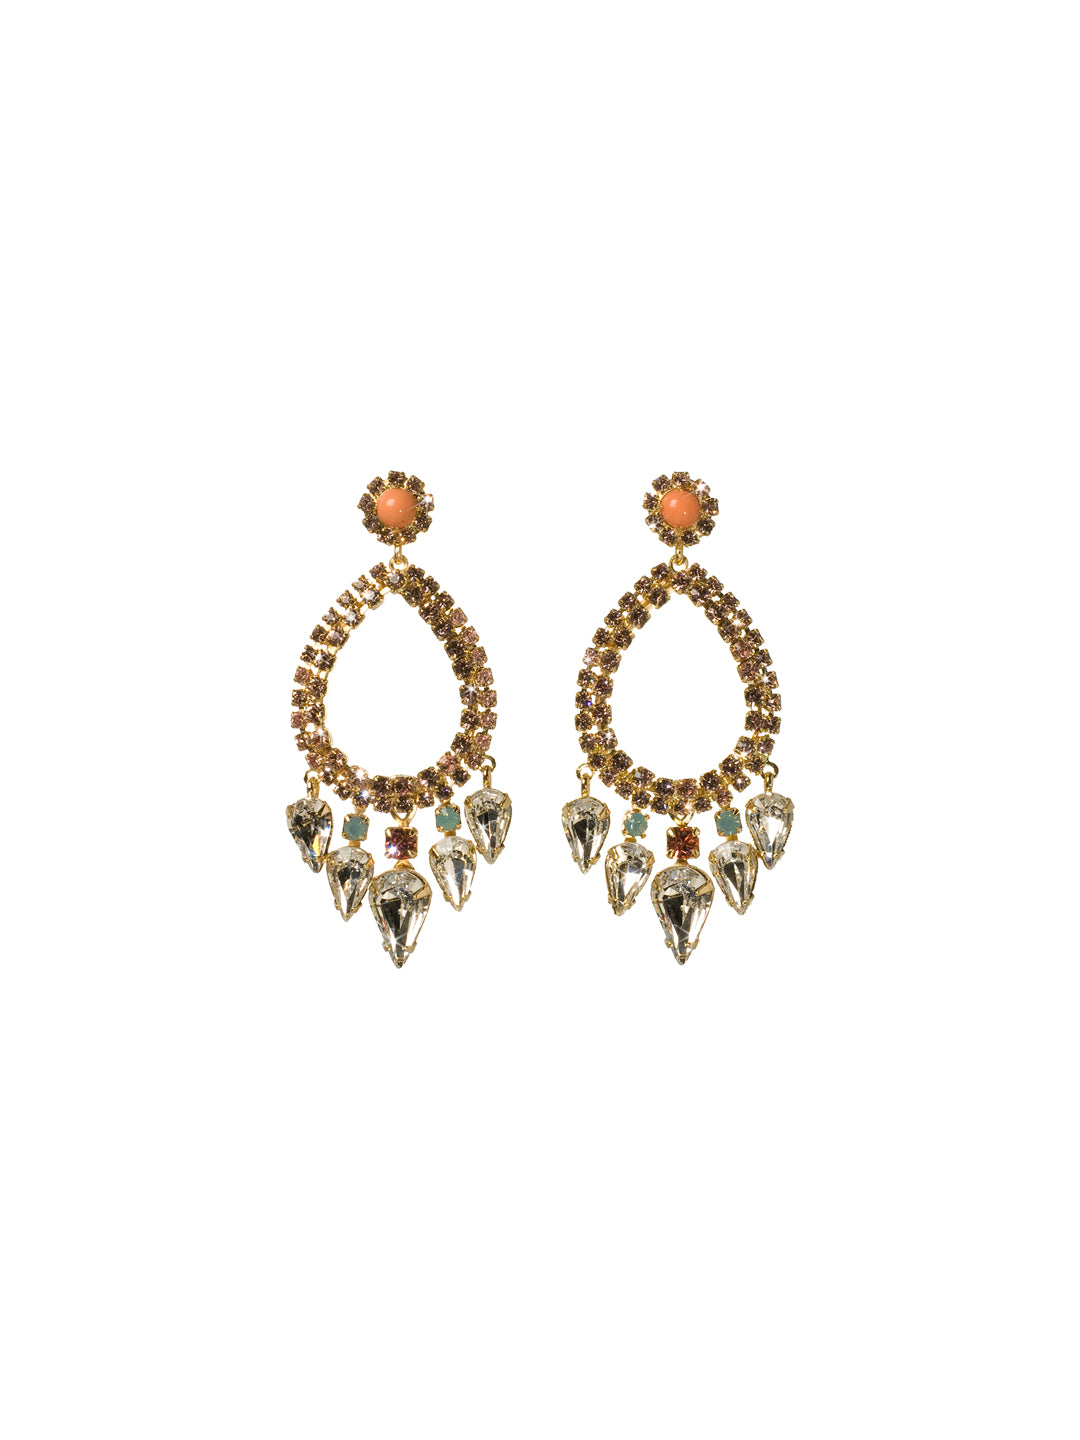 Outlined Teardrop Statement Earrings - ECU21BGCOR